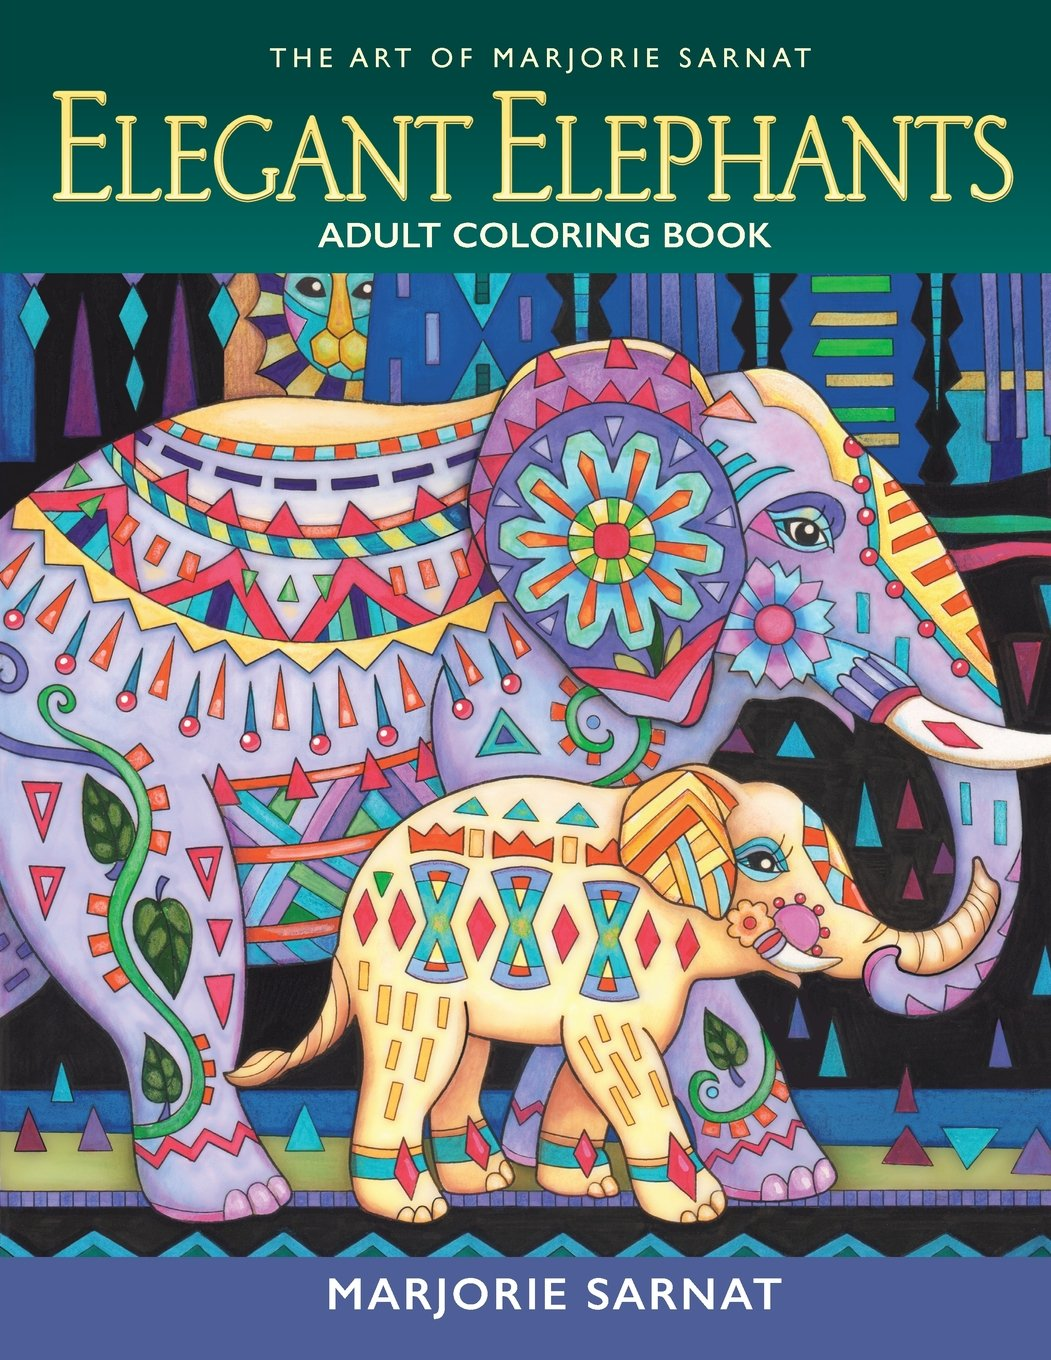 Amazon.com: The Art of Marjorie Sarnat: Elegant Elephants Adult ...